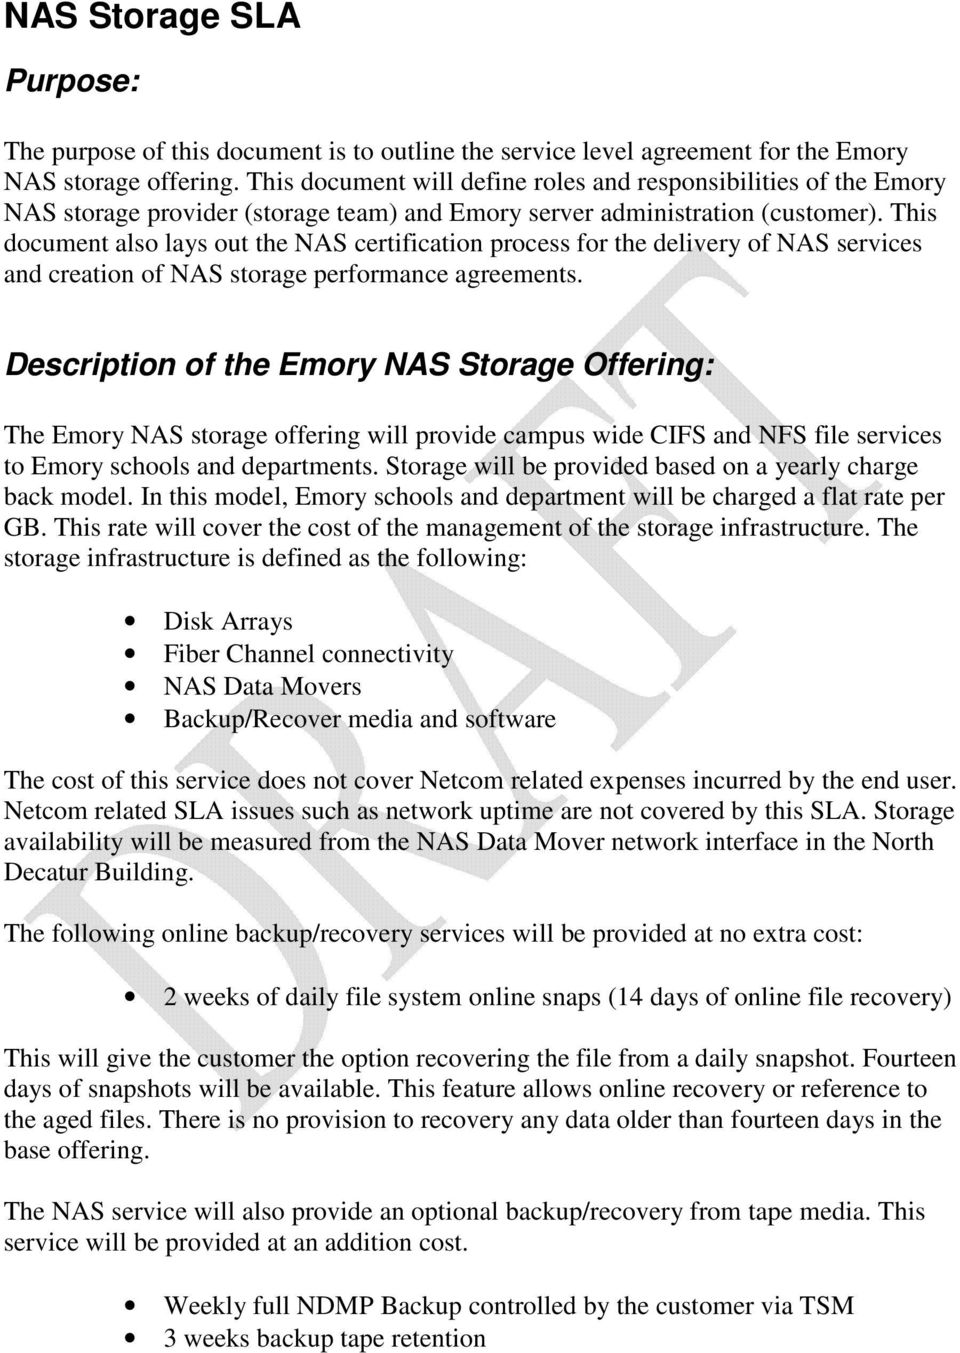 This document also lays out the NAS certification process for the delivery of NAS services and creation of NAS storage performance agreements.